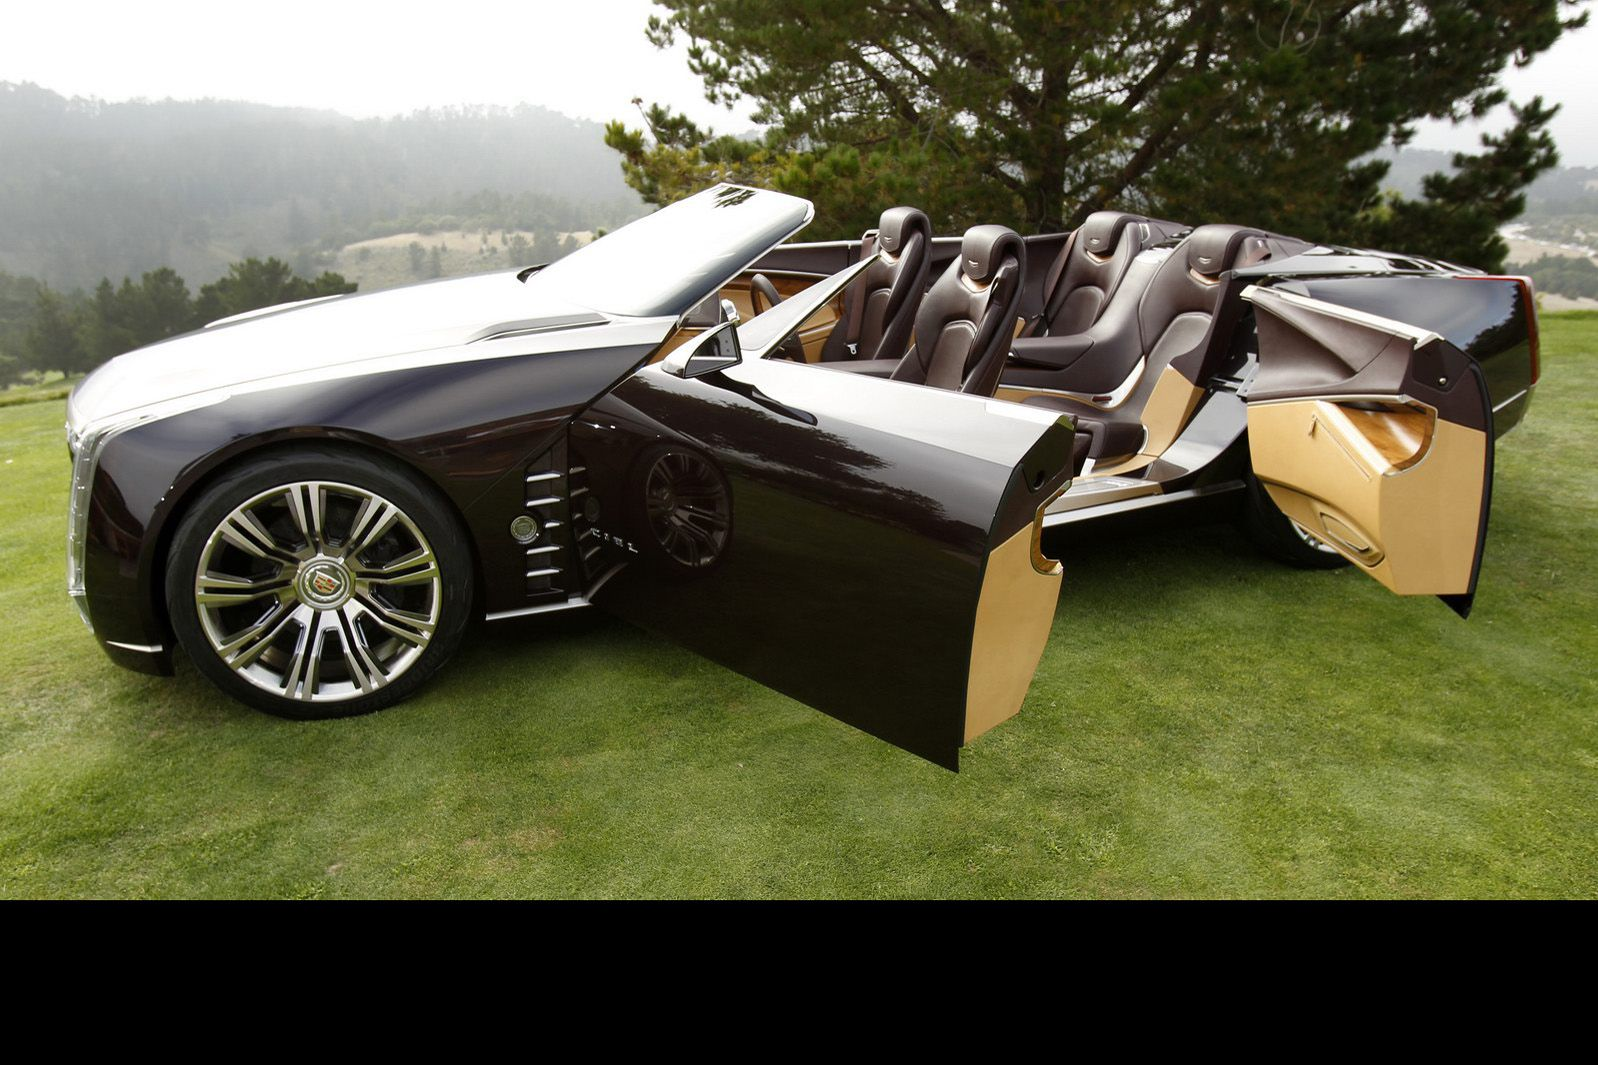 2014 cadillac convertible Love it Would like a different color